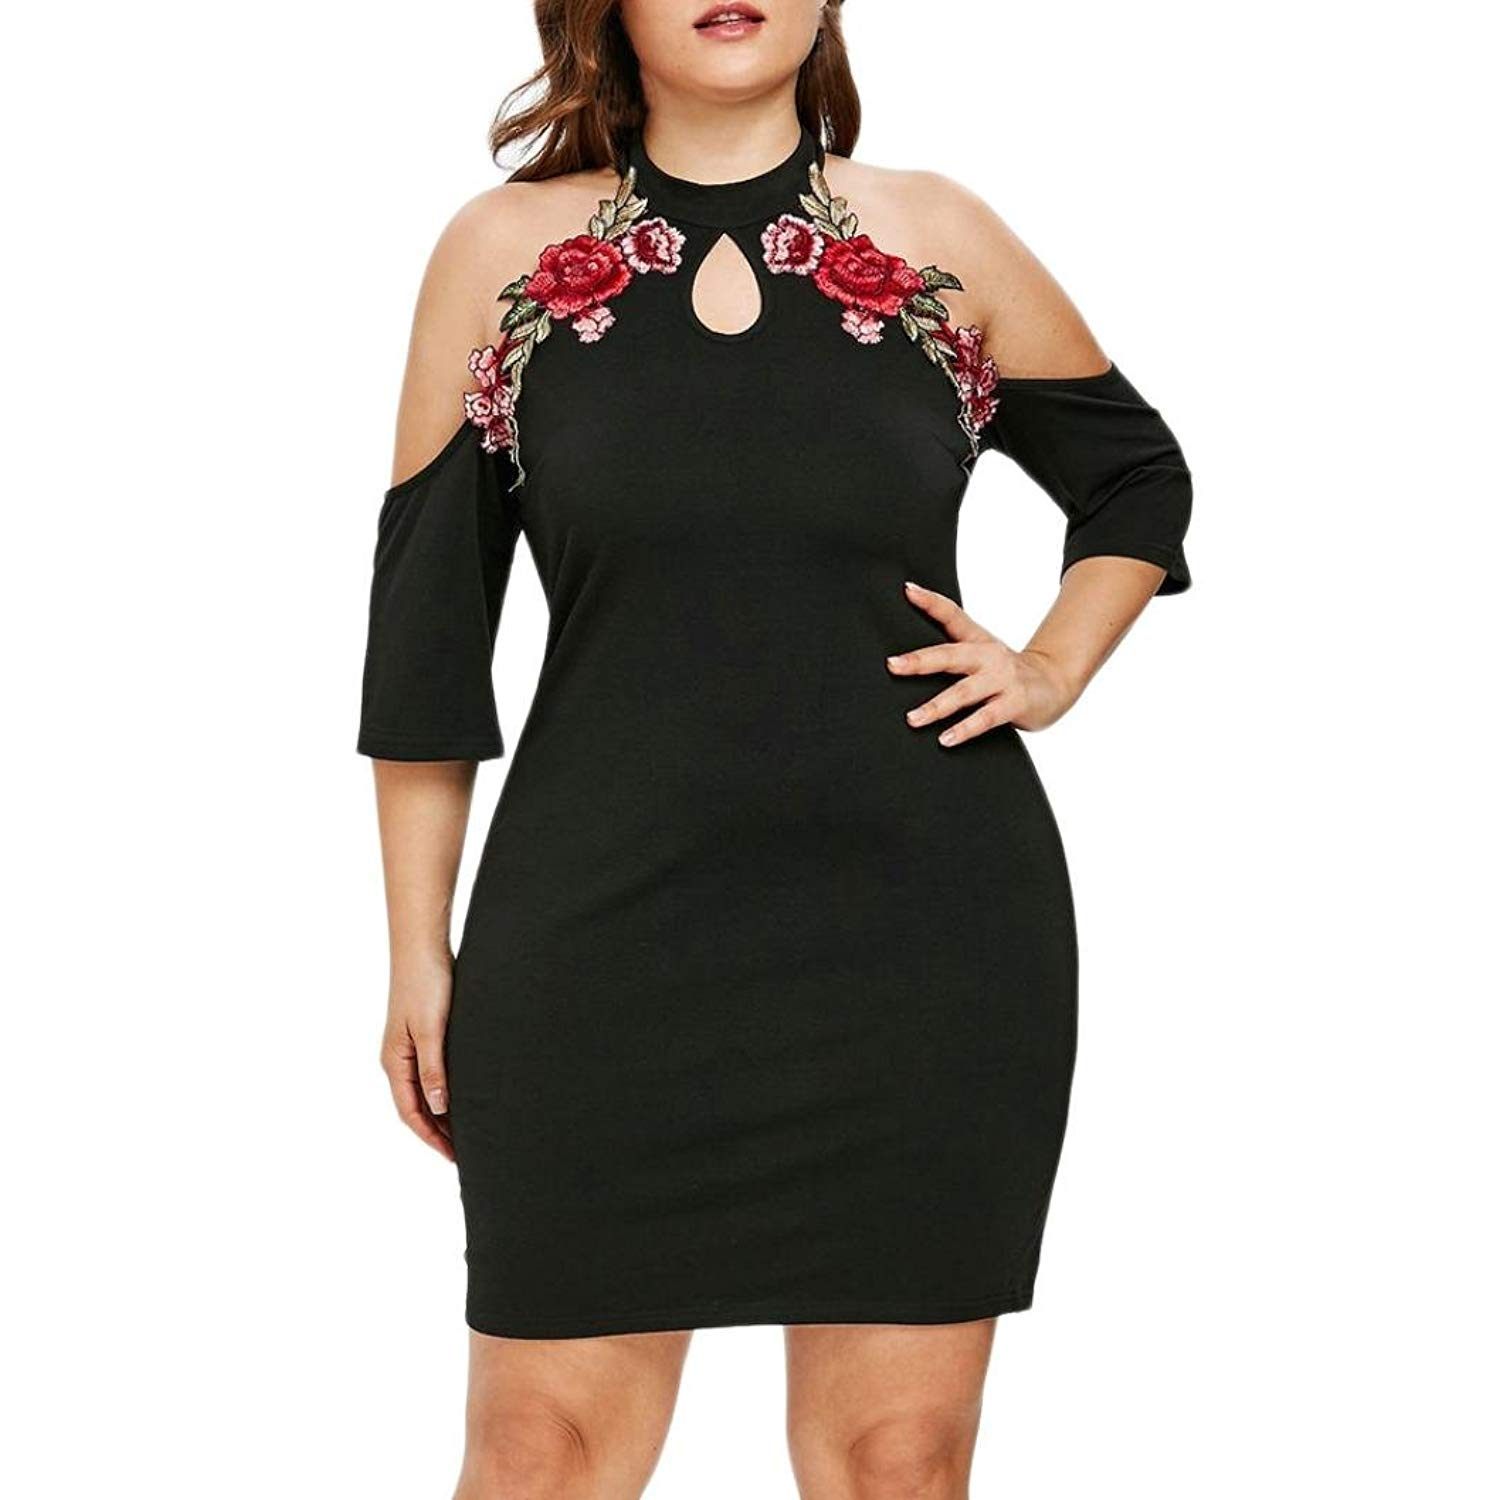 ac07e3bb3d Get Quotations · Womens Strapless Mini Dress Clearance Flower Embroidery  Applique Keyhole